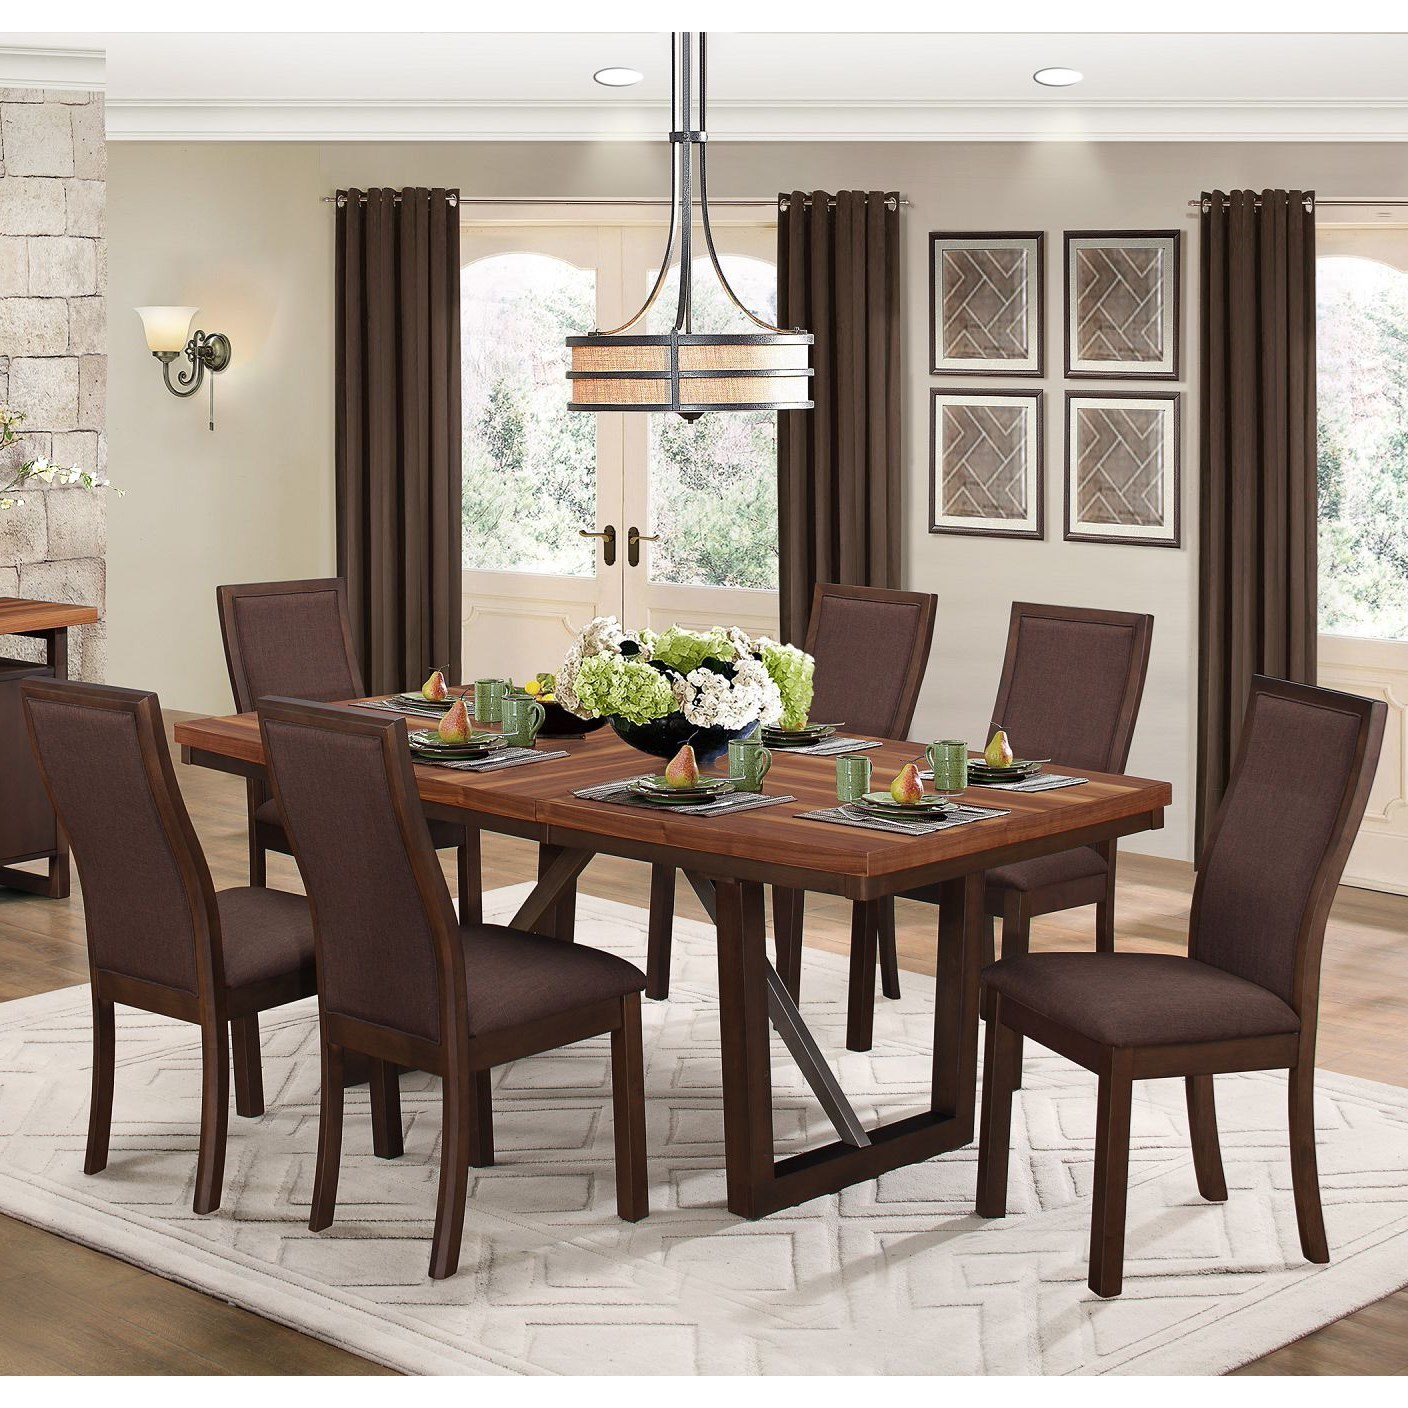 Compson Table and 4 Chair Set by Homelegance at Beck's Furniture